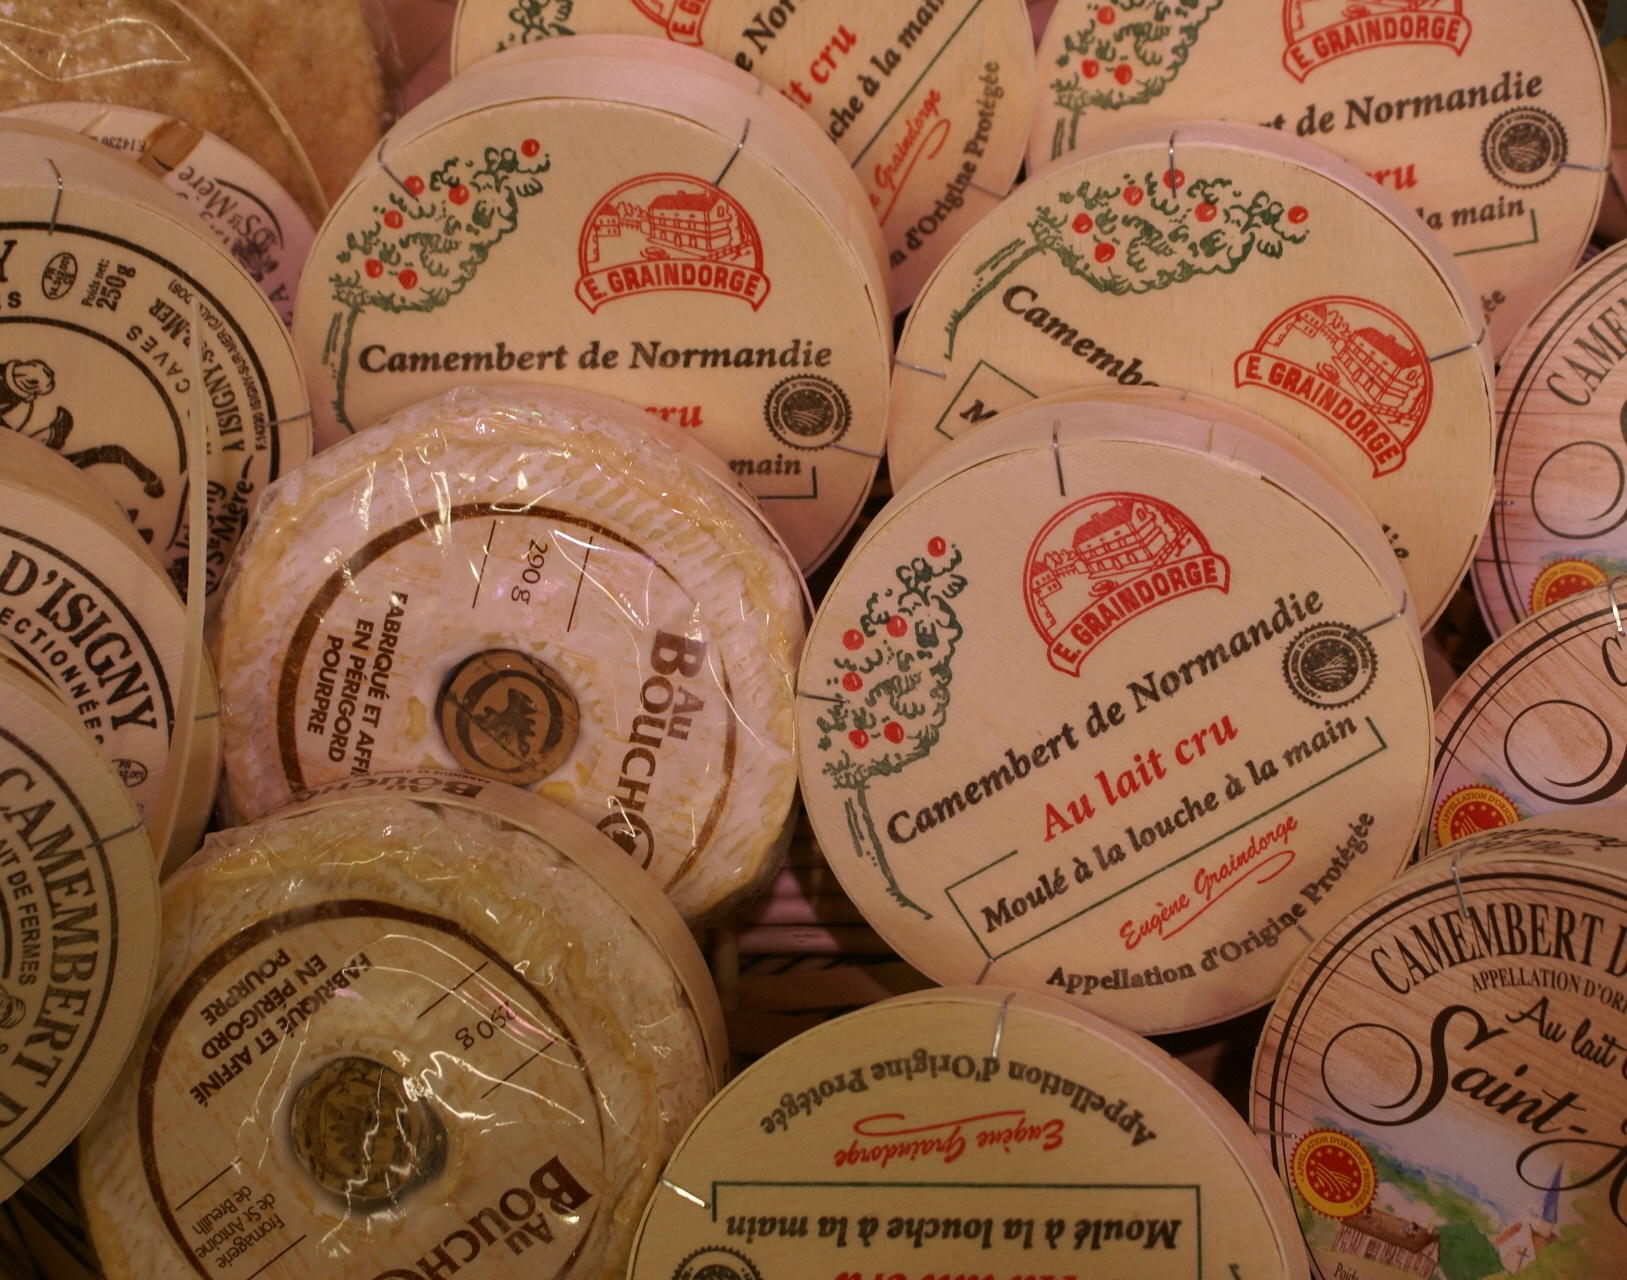 Camembert cheeses